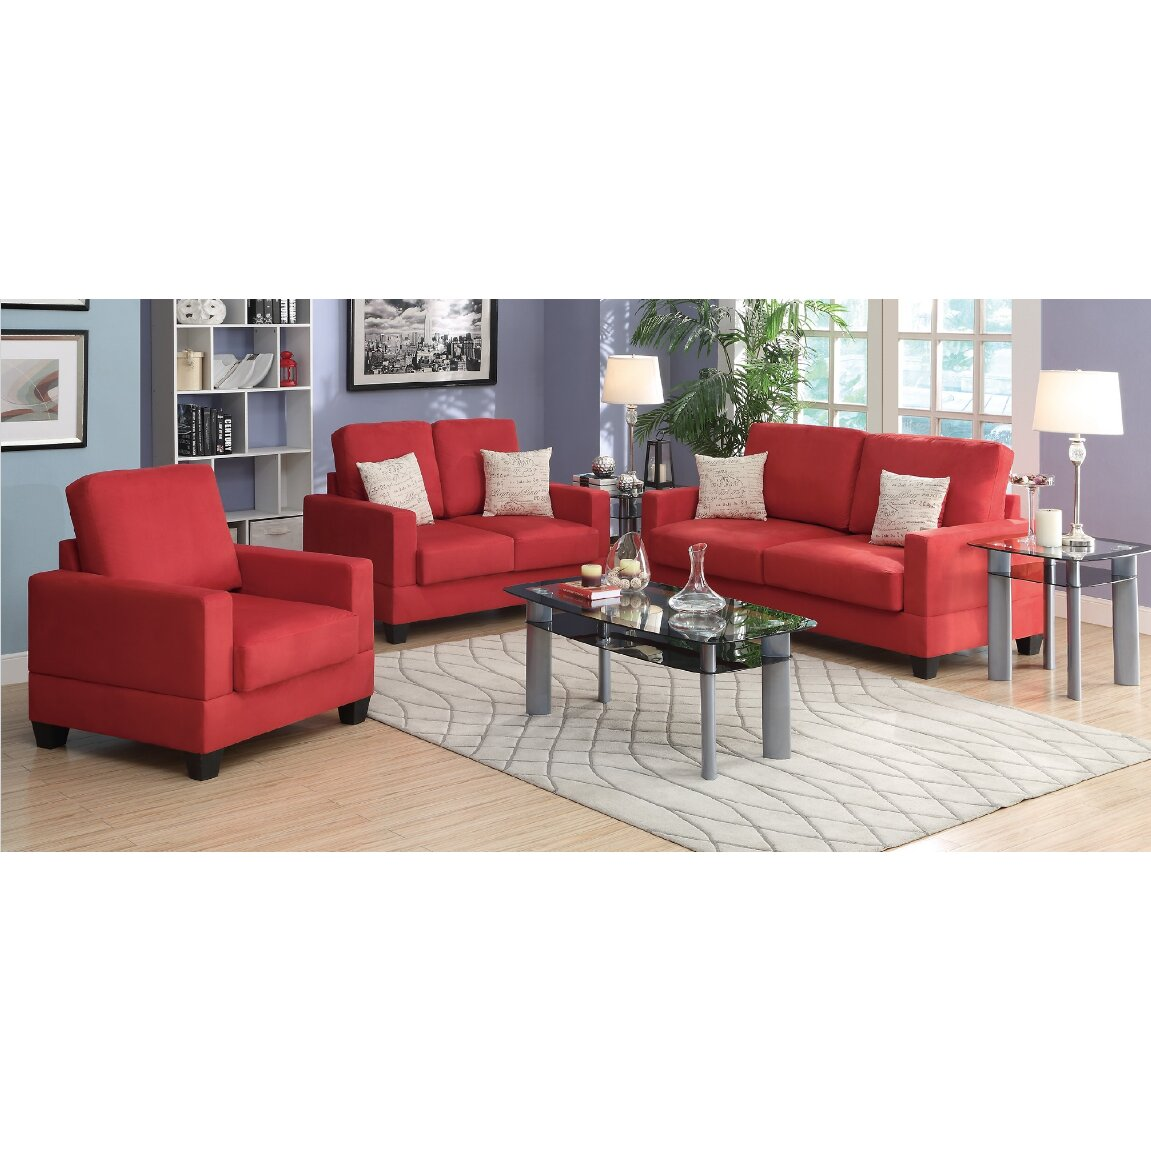 A j homes studio pandora 3 piece living room set wayfair for 3 piece living room furniture